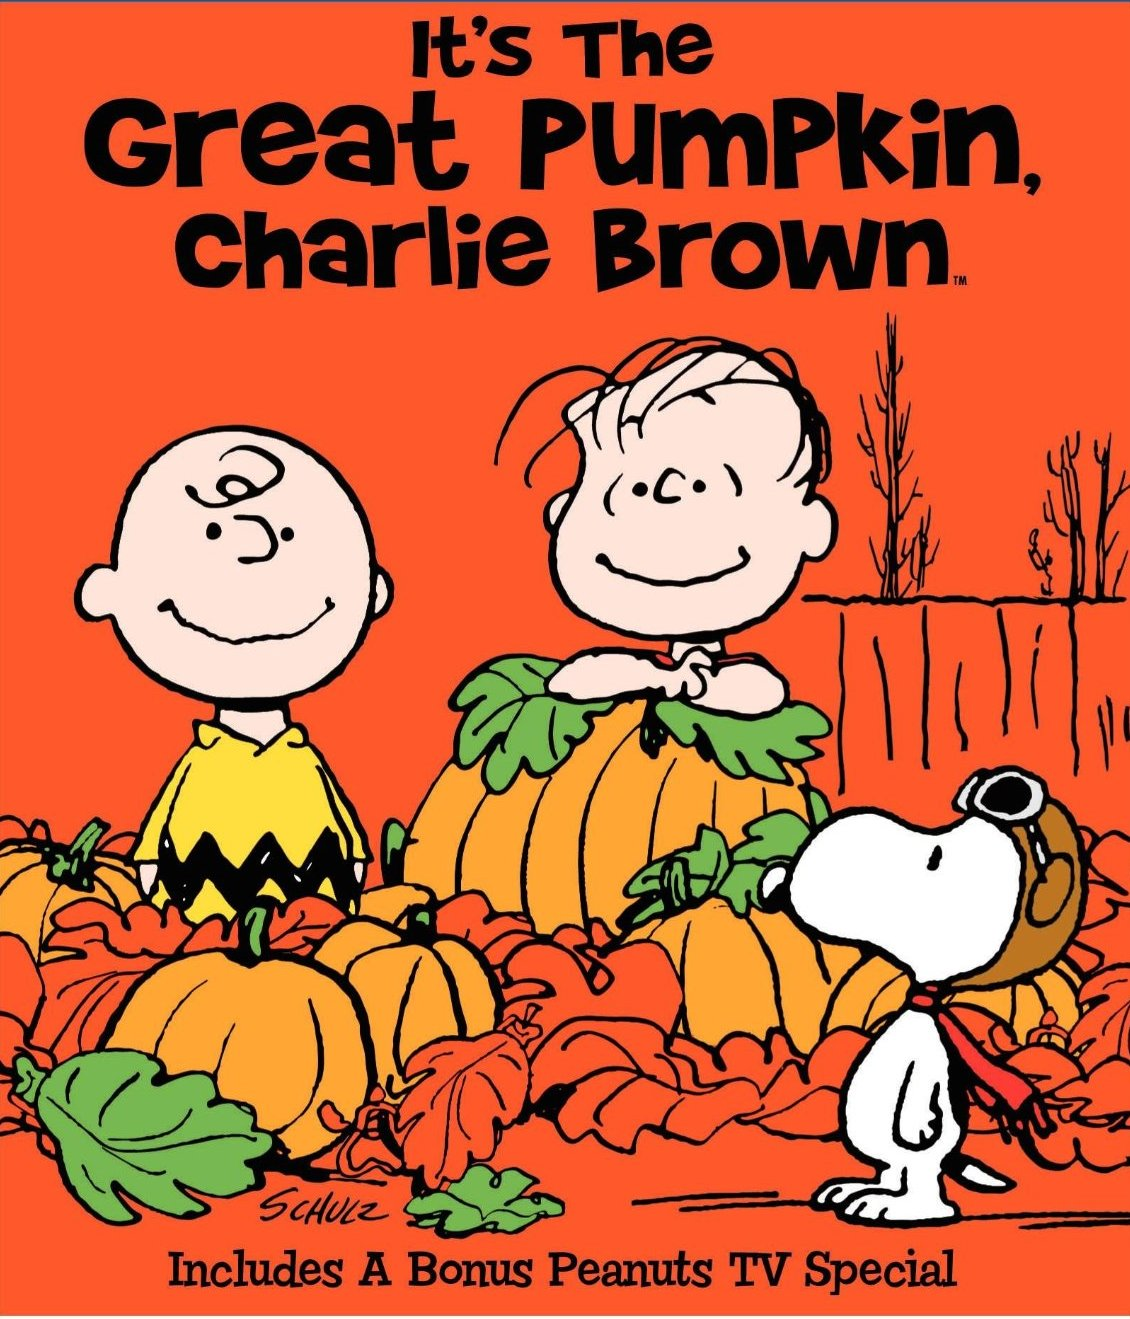 Charlie Brown Quotes About Life: Funny Quotes Charlie Brown. QuotesGram